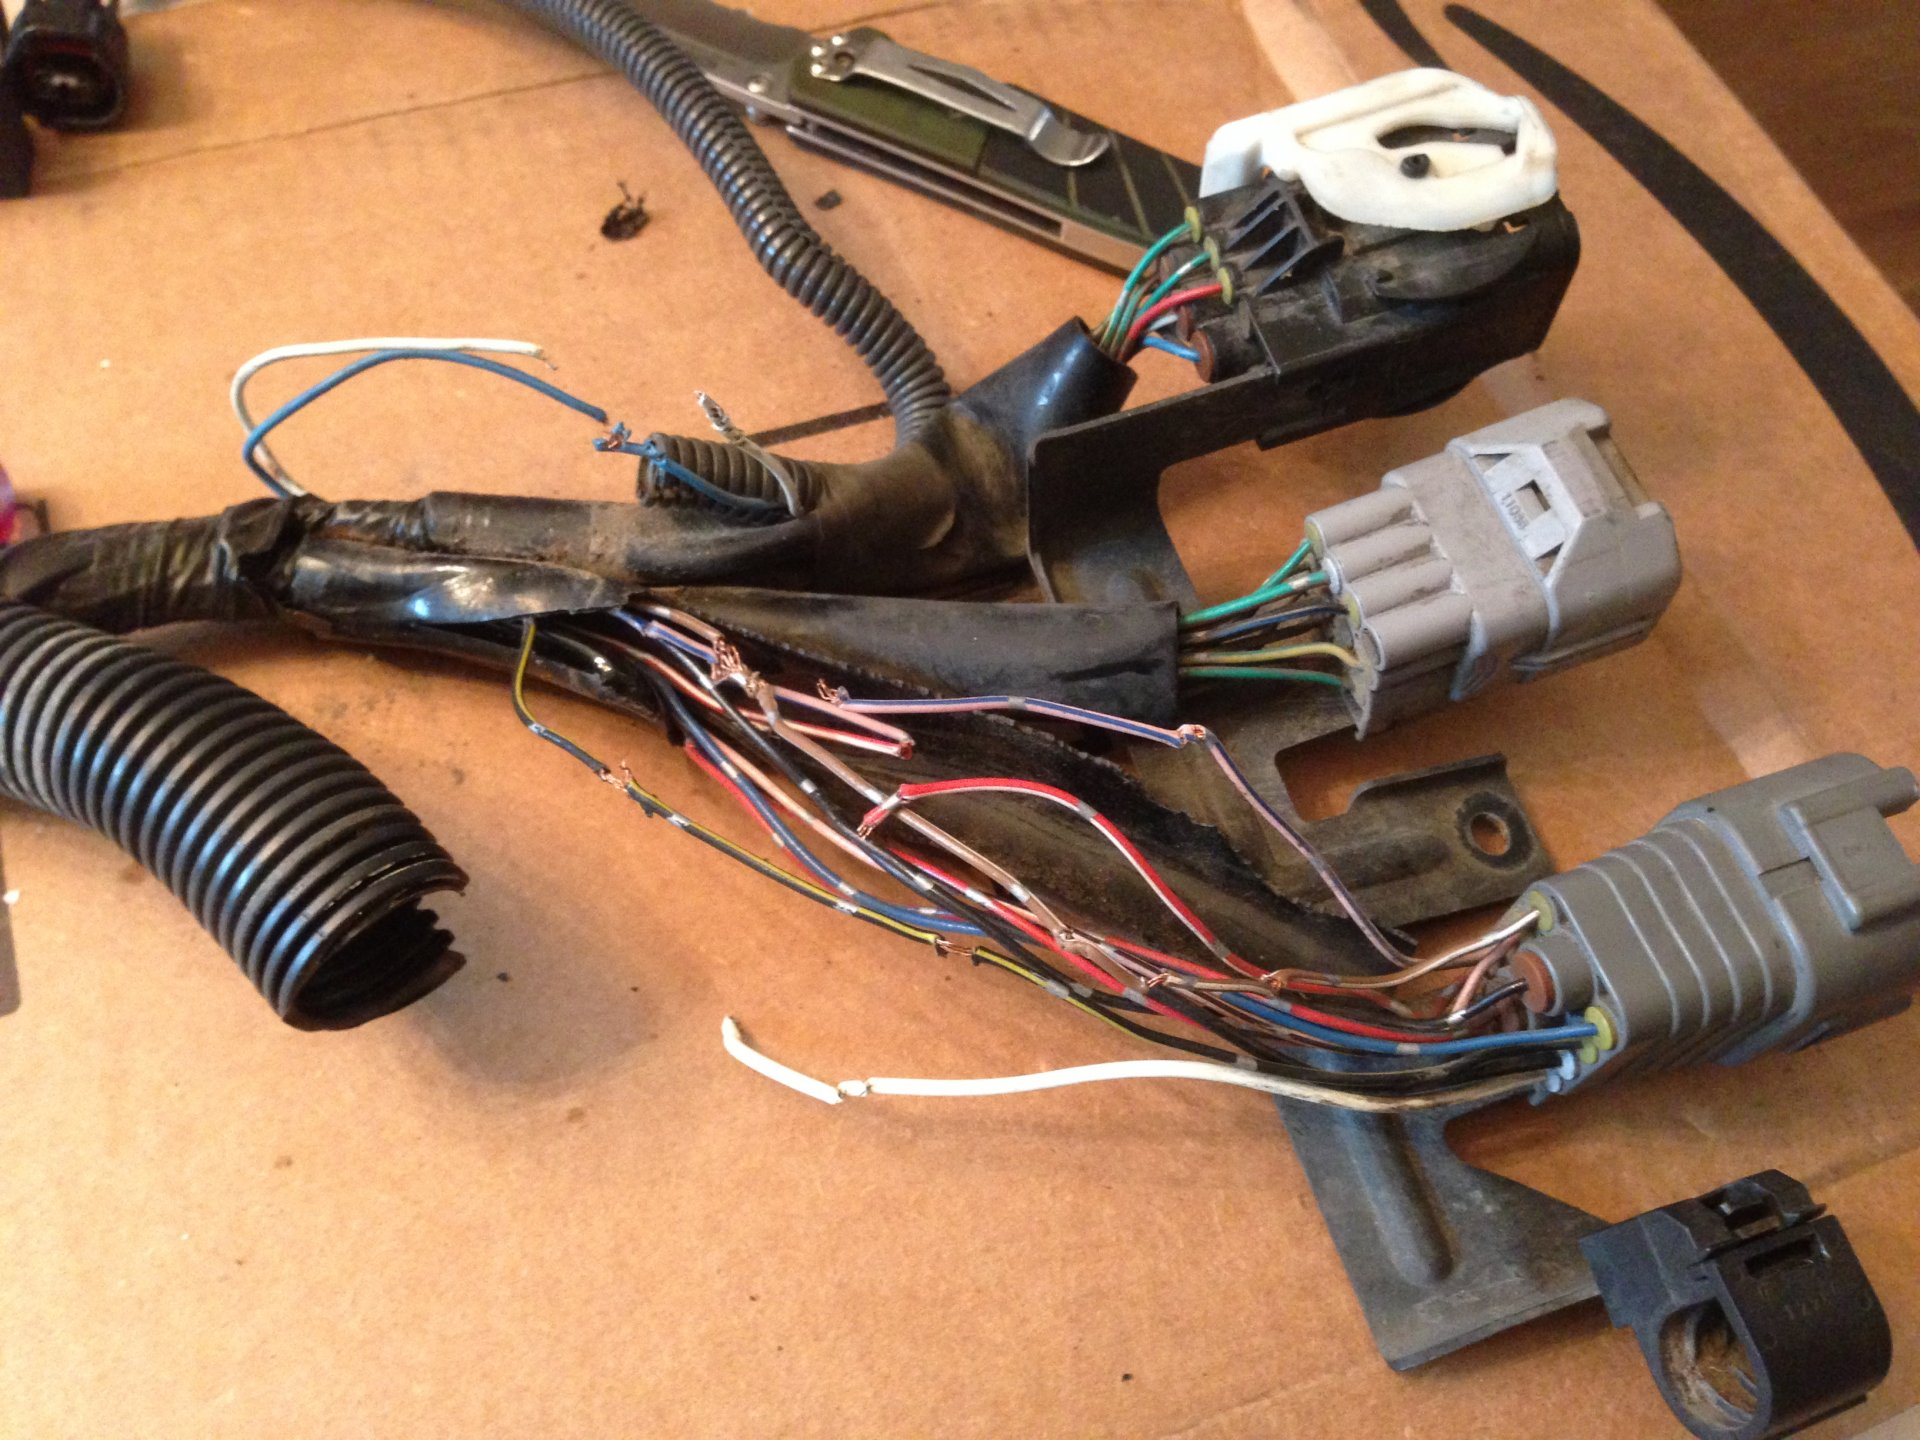 P0778 And P0748 Pressure Control Solenoid A B Both Ih8mud Forum 2008 Tundra Transmission Wiring Harness Exif Data Expand Collapse